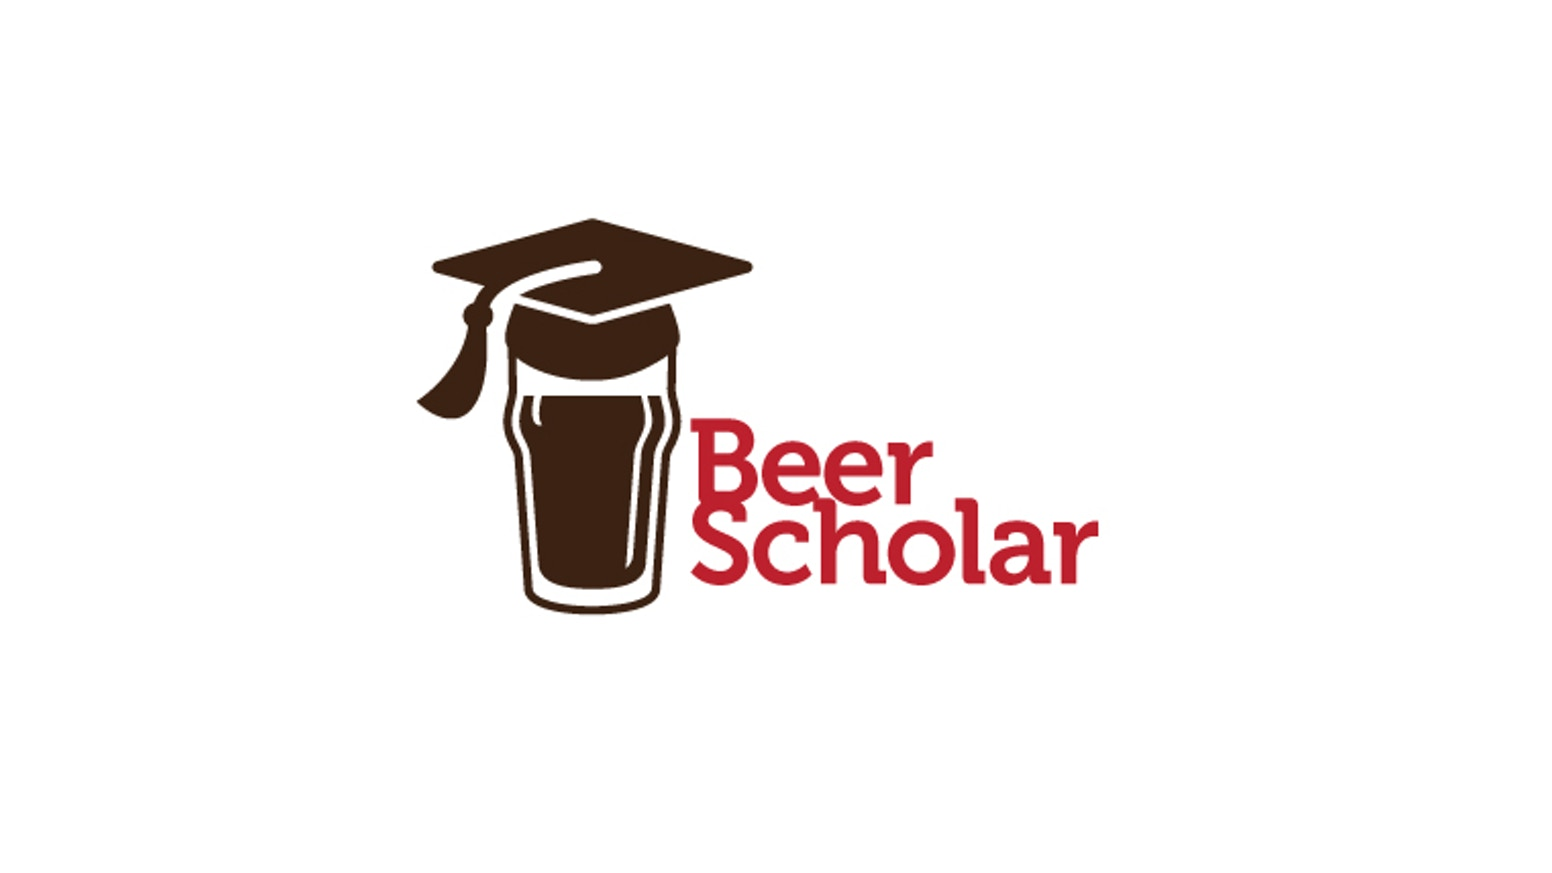 Build Your Beer Knowledge - All About Beer